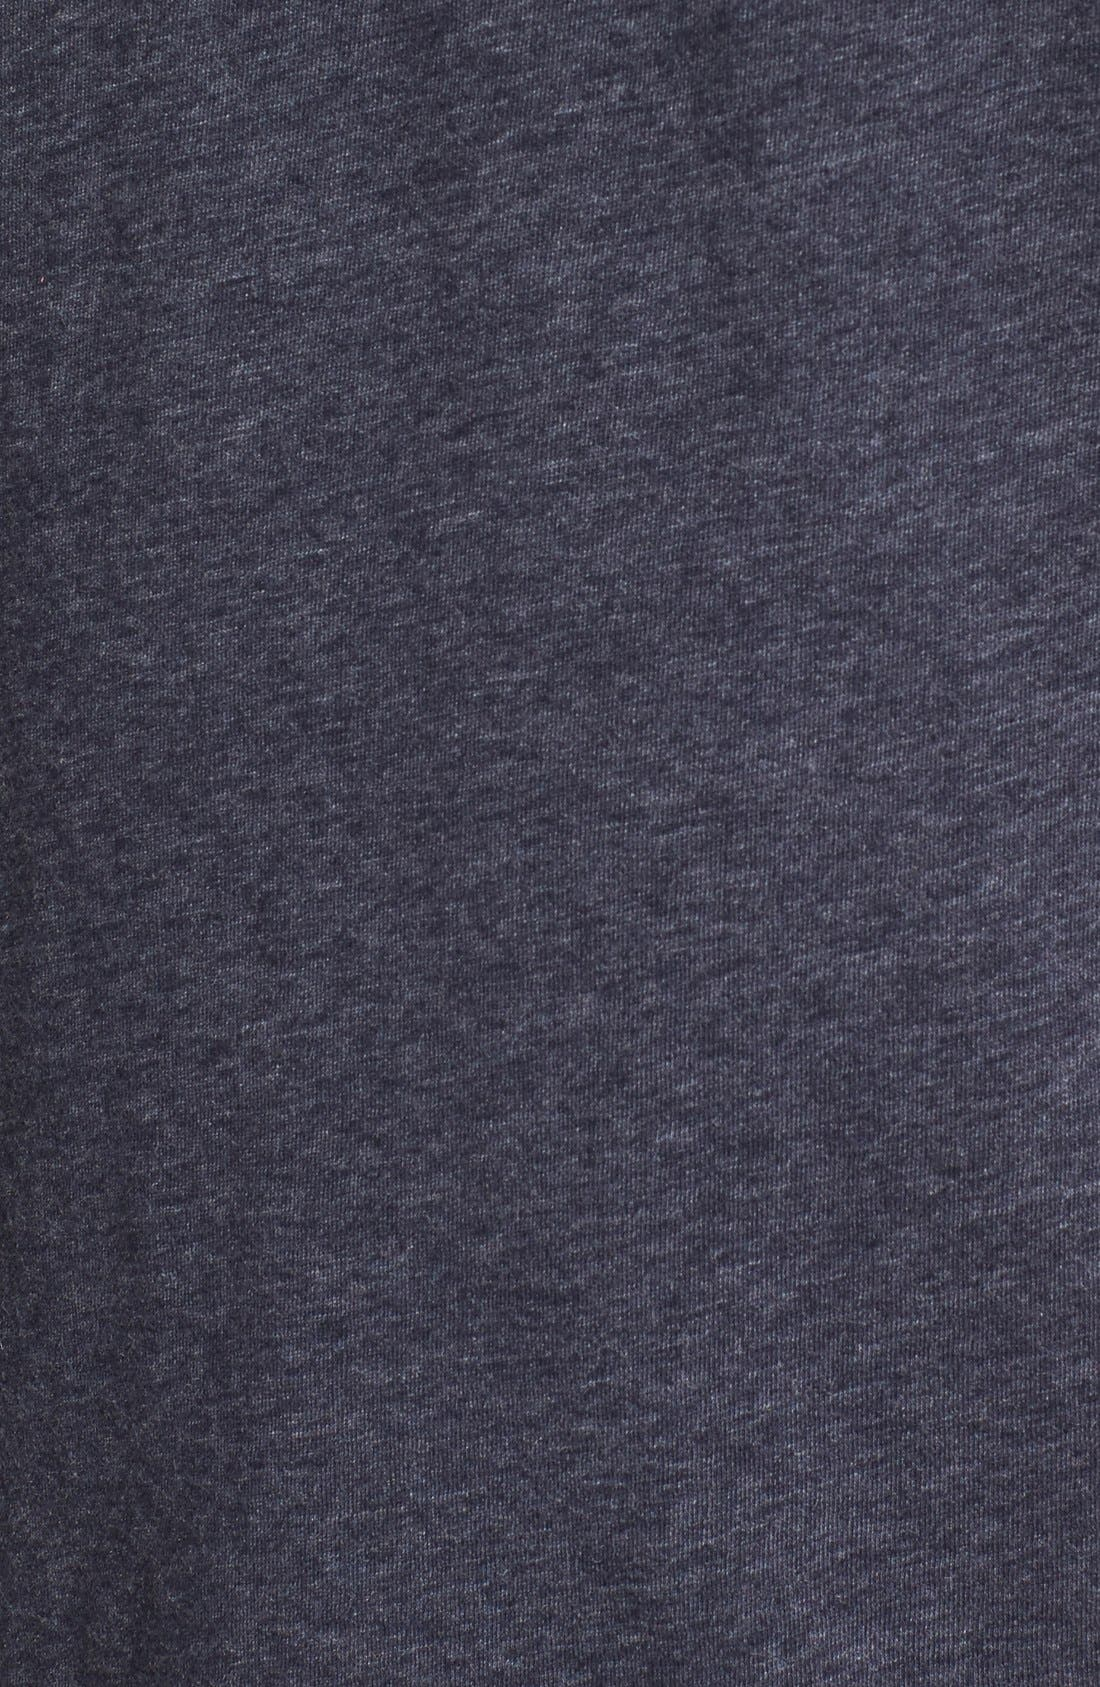 Recycled Cotton Blend T-Shirt,                             Alternate thumbnail 14, color,